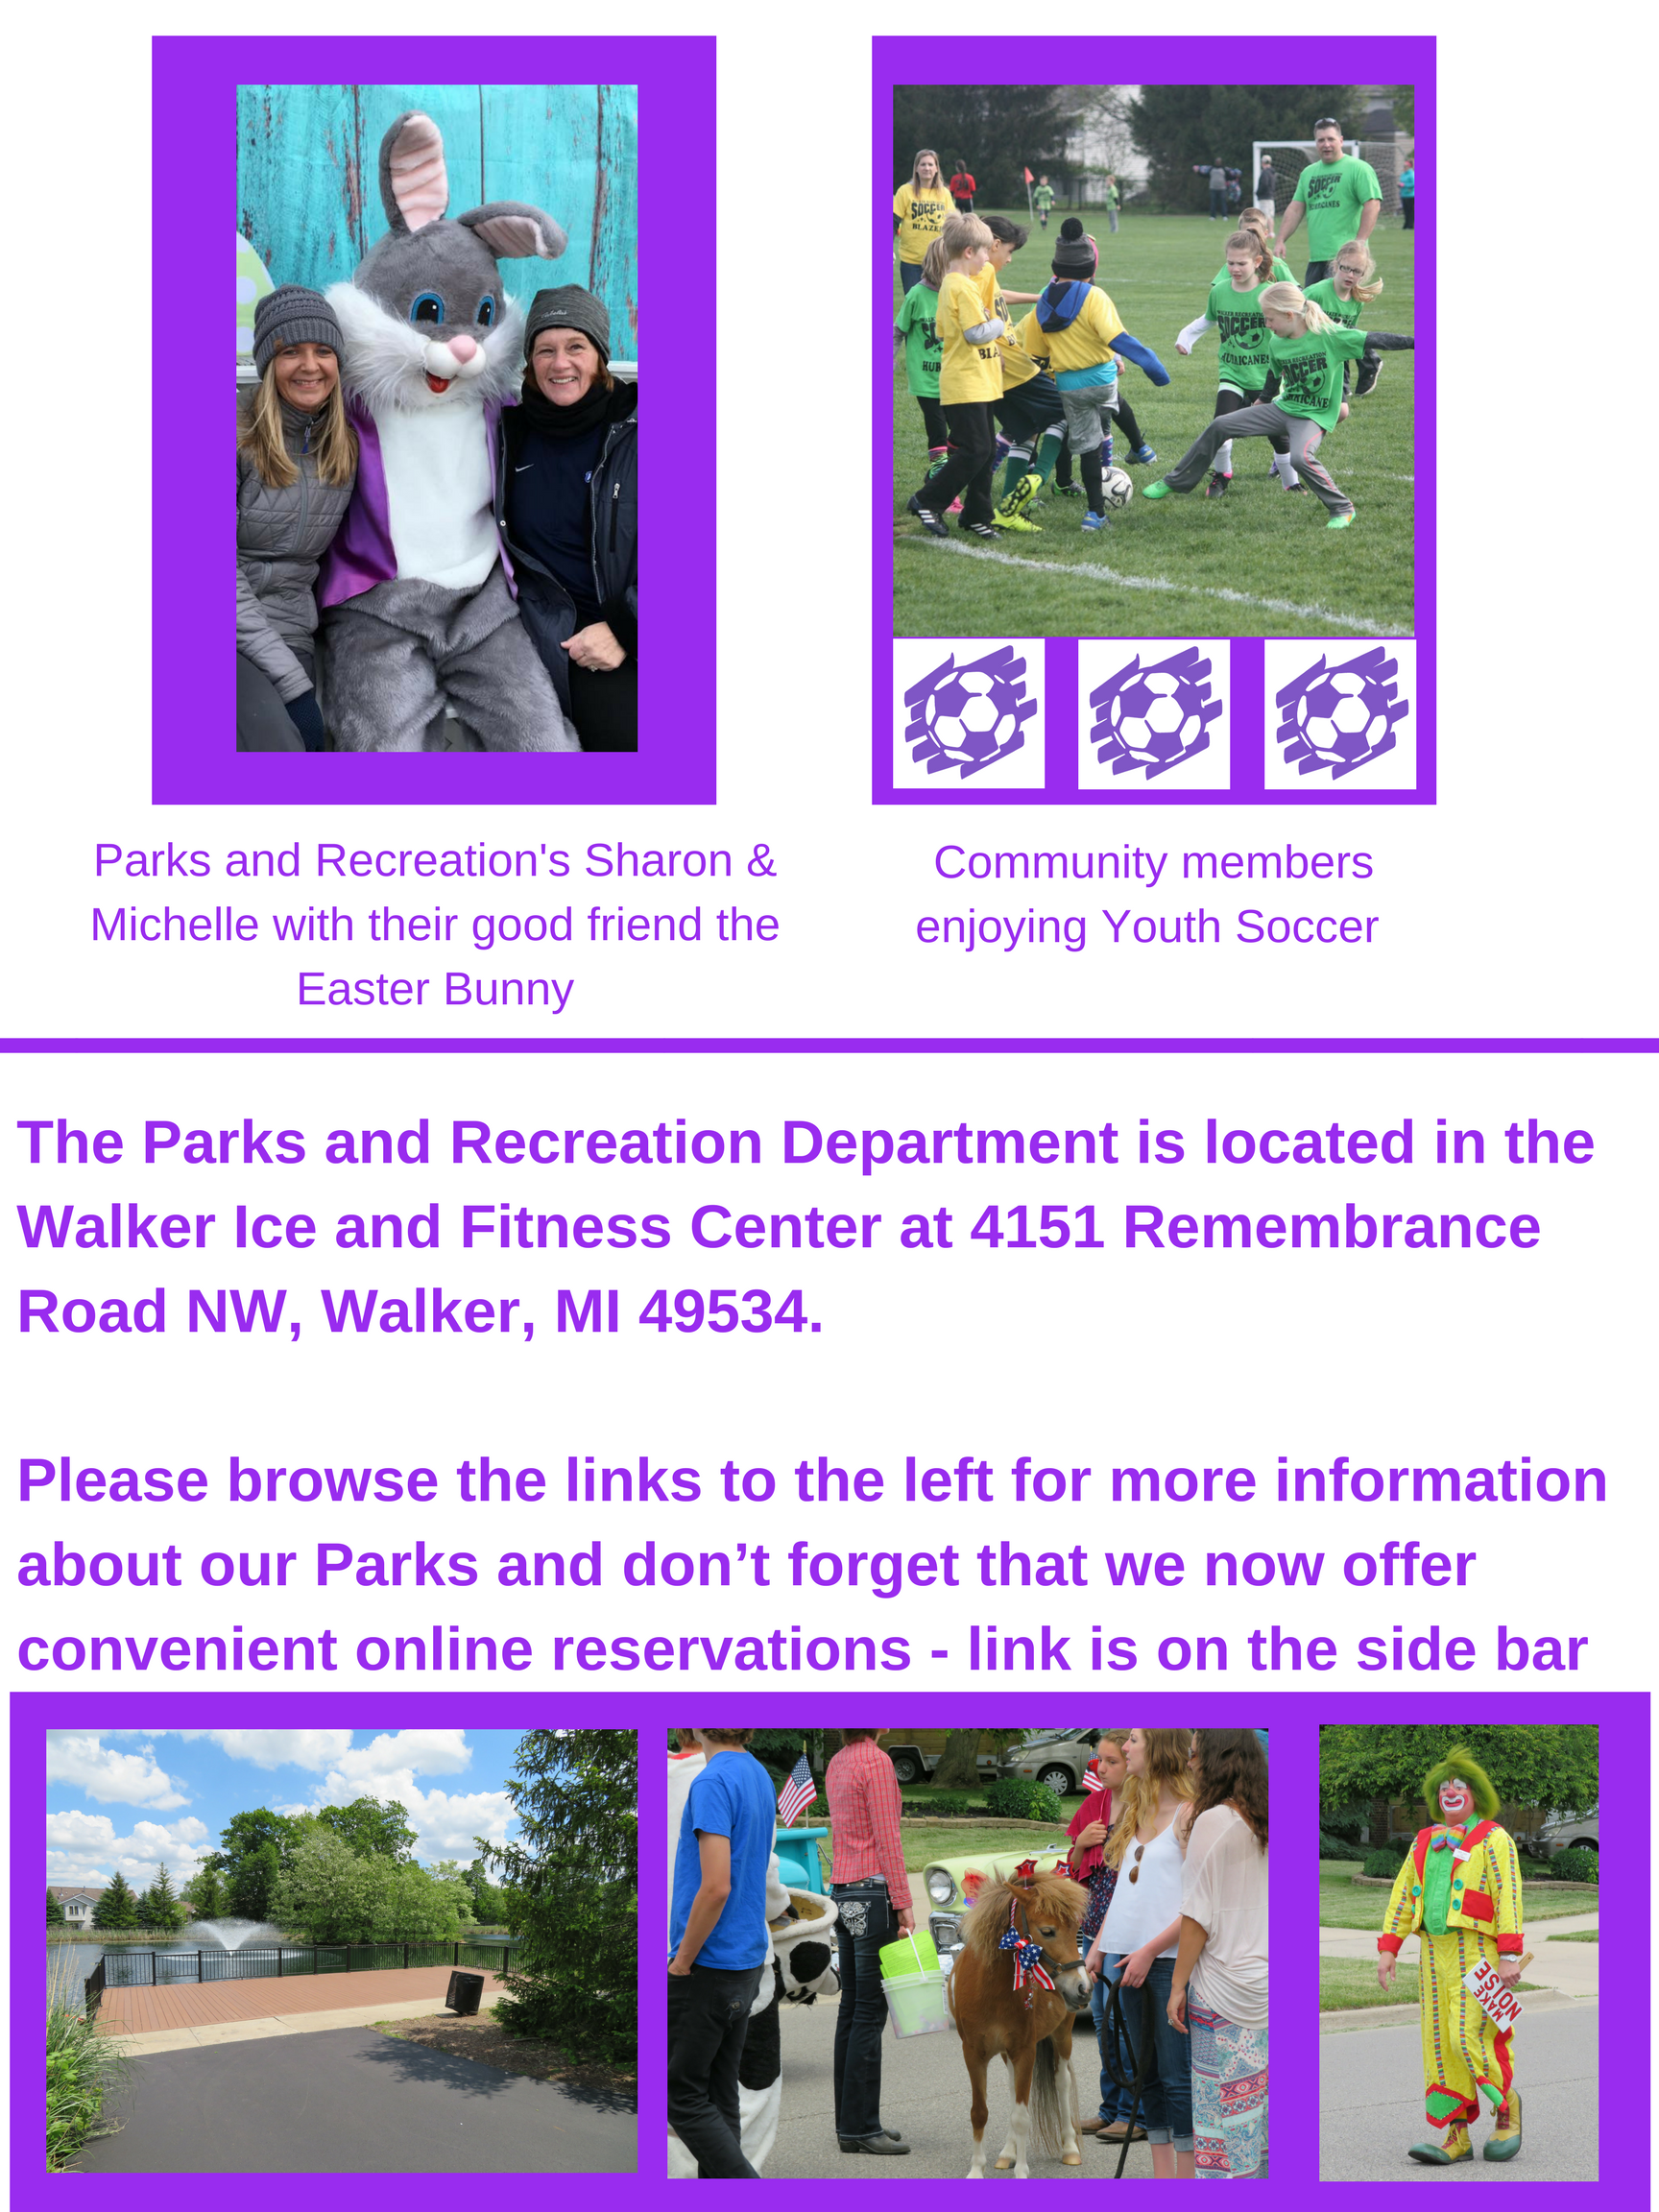 050418 - main parks info page 2